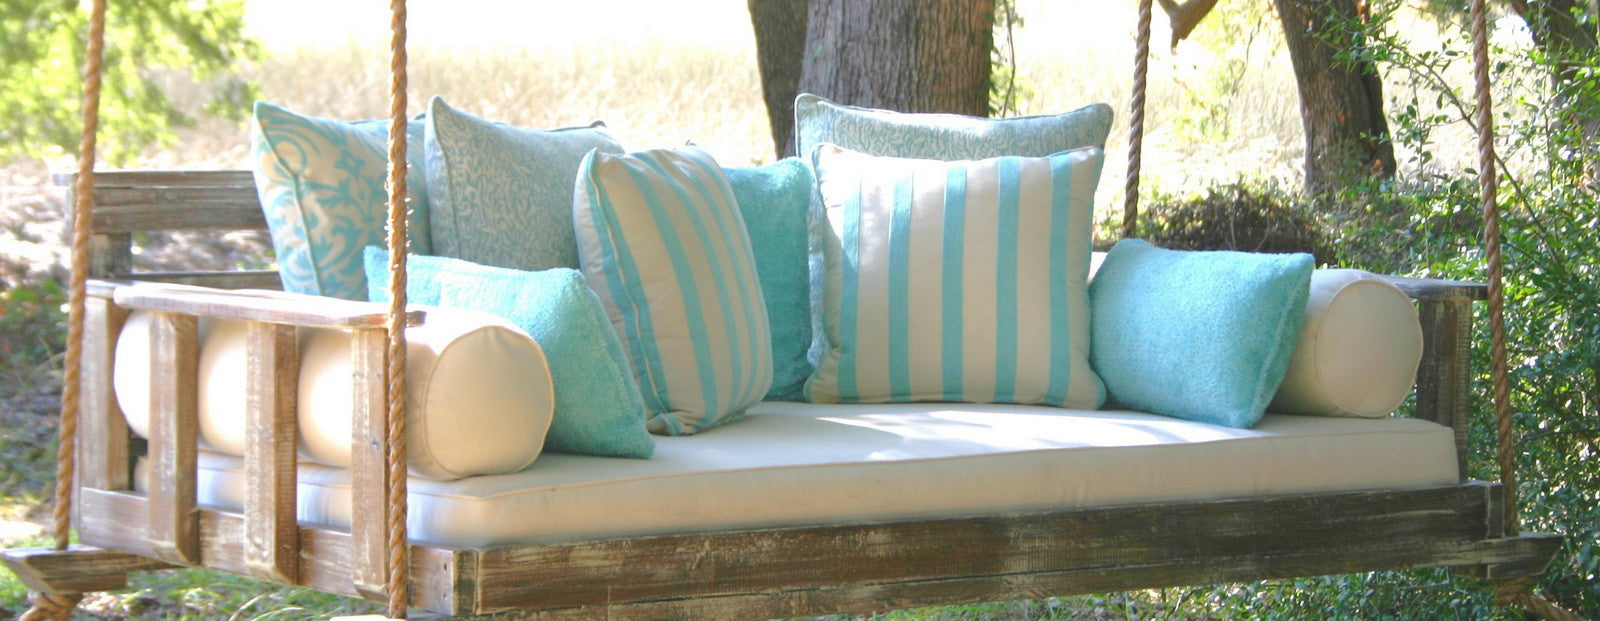 Picture of: Porch Swings Hanging Swing Beds For Sale Outdoor Furniture Www Myporchswings Com